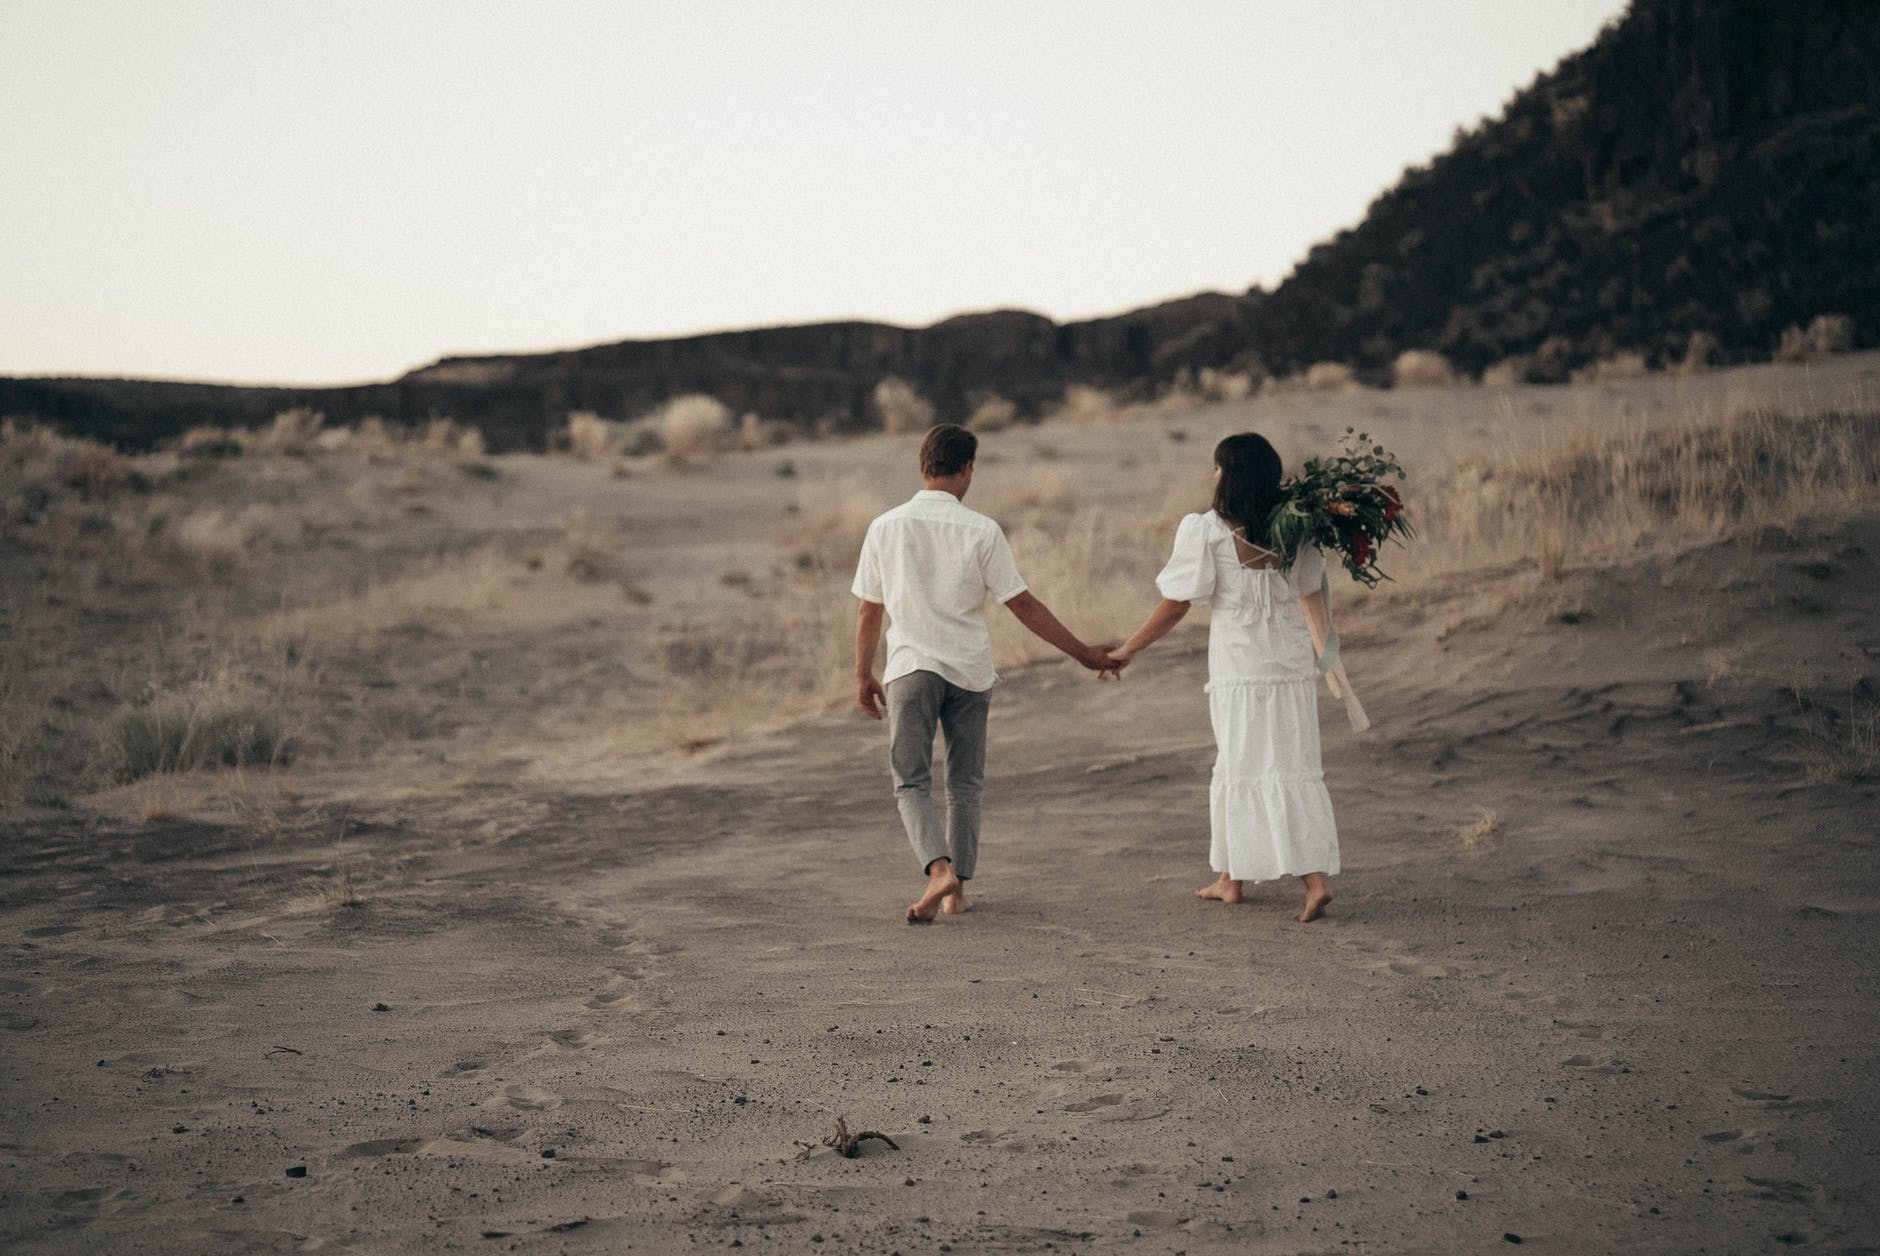 unrecognizable wedding barefoot couple walking on sandy terrain